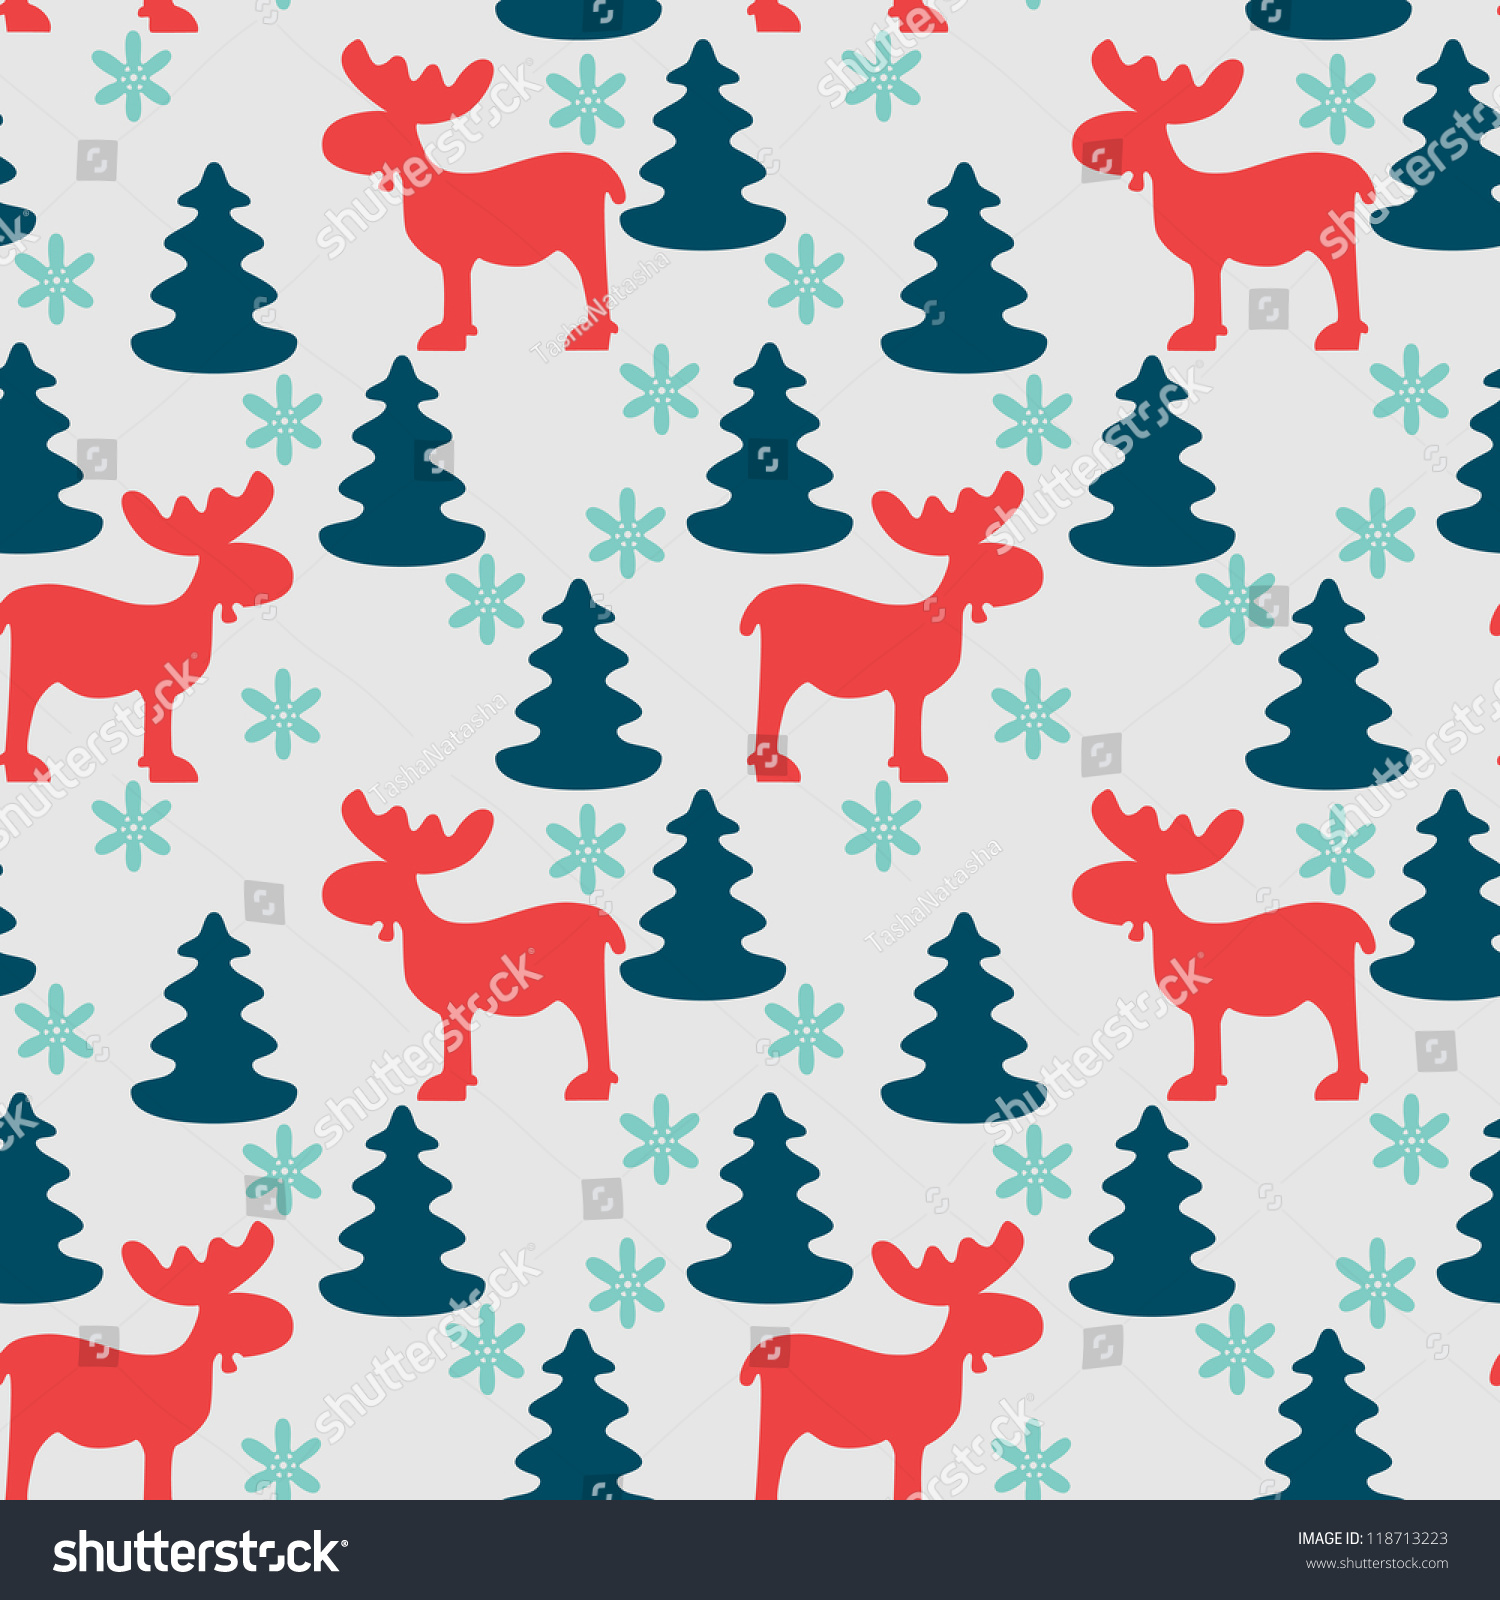 Seamless fir tree scandinavian pattern textile background wrapping - Christmas Seamless Pattern With Moose Fir Tree And Snowflake Silhouettes Vector Illustration